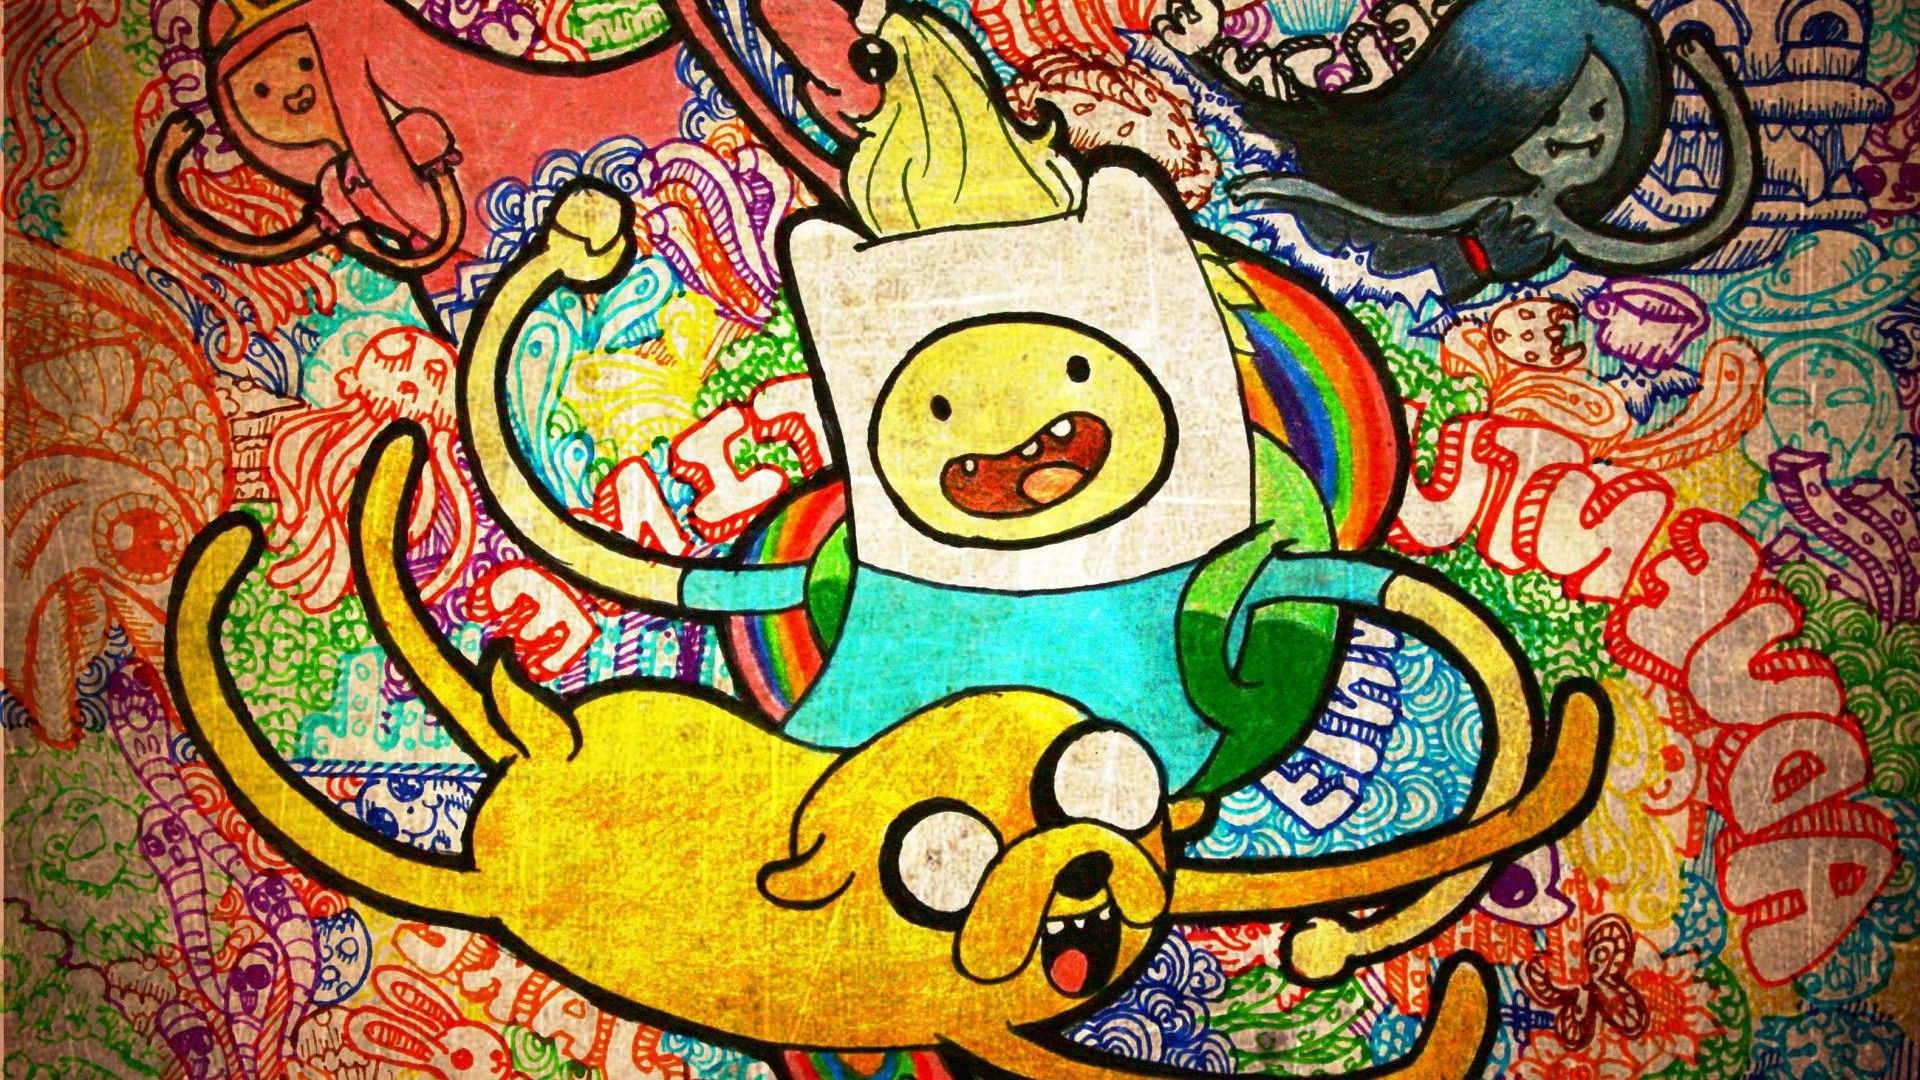 Pin by Little Breadstick ) on Adventure Time